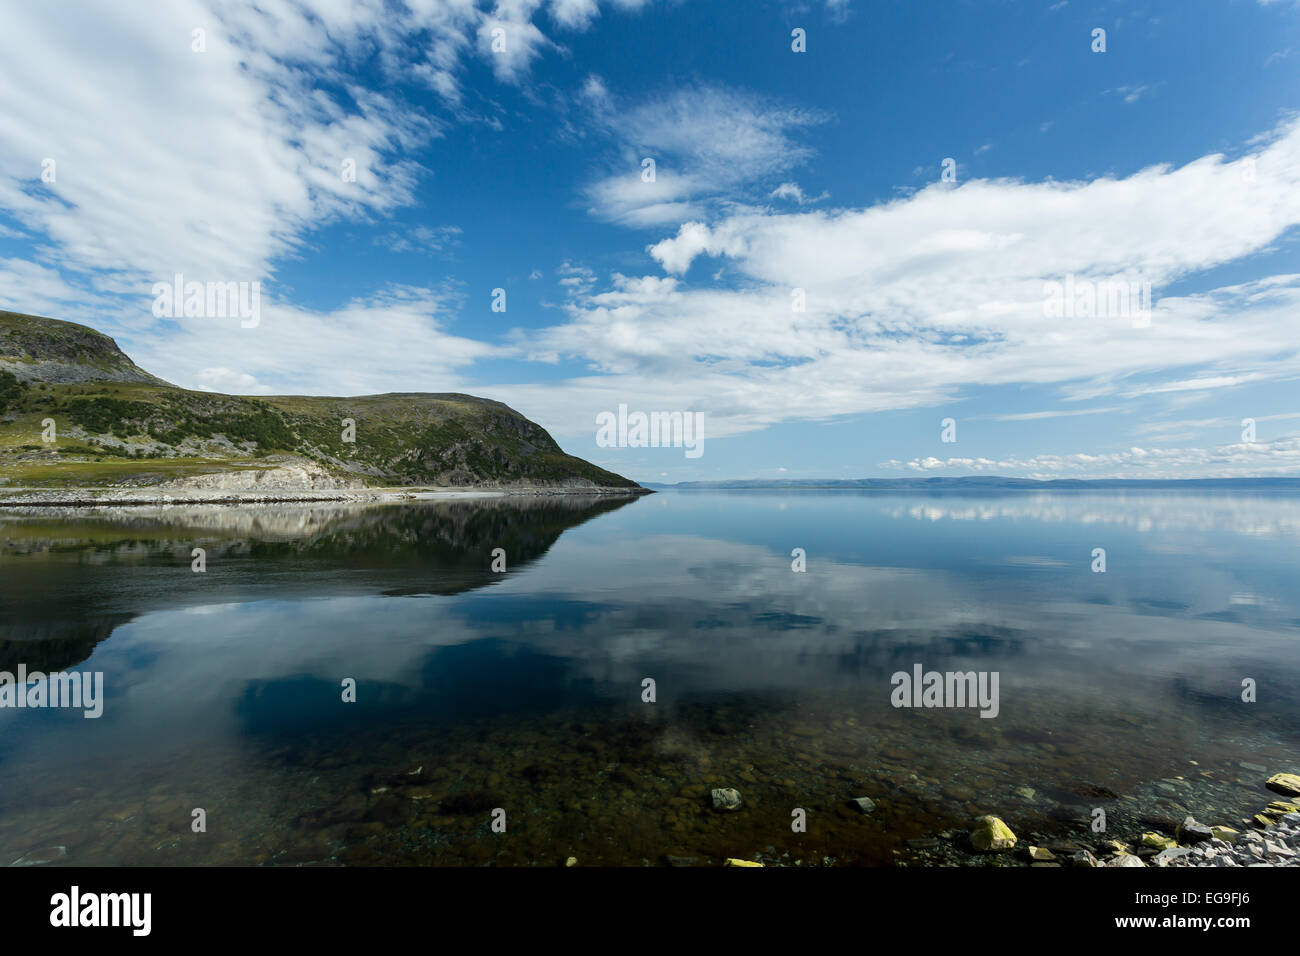 Norway, Finnmark, Norge, View of tranquil fjord - Stock Image